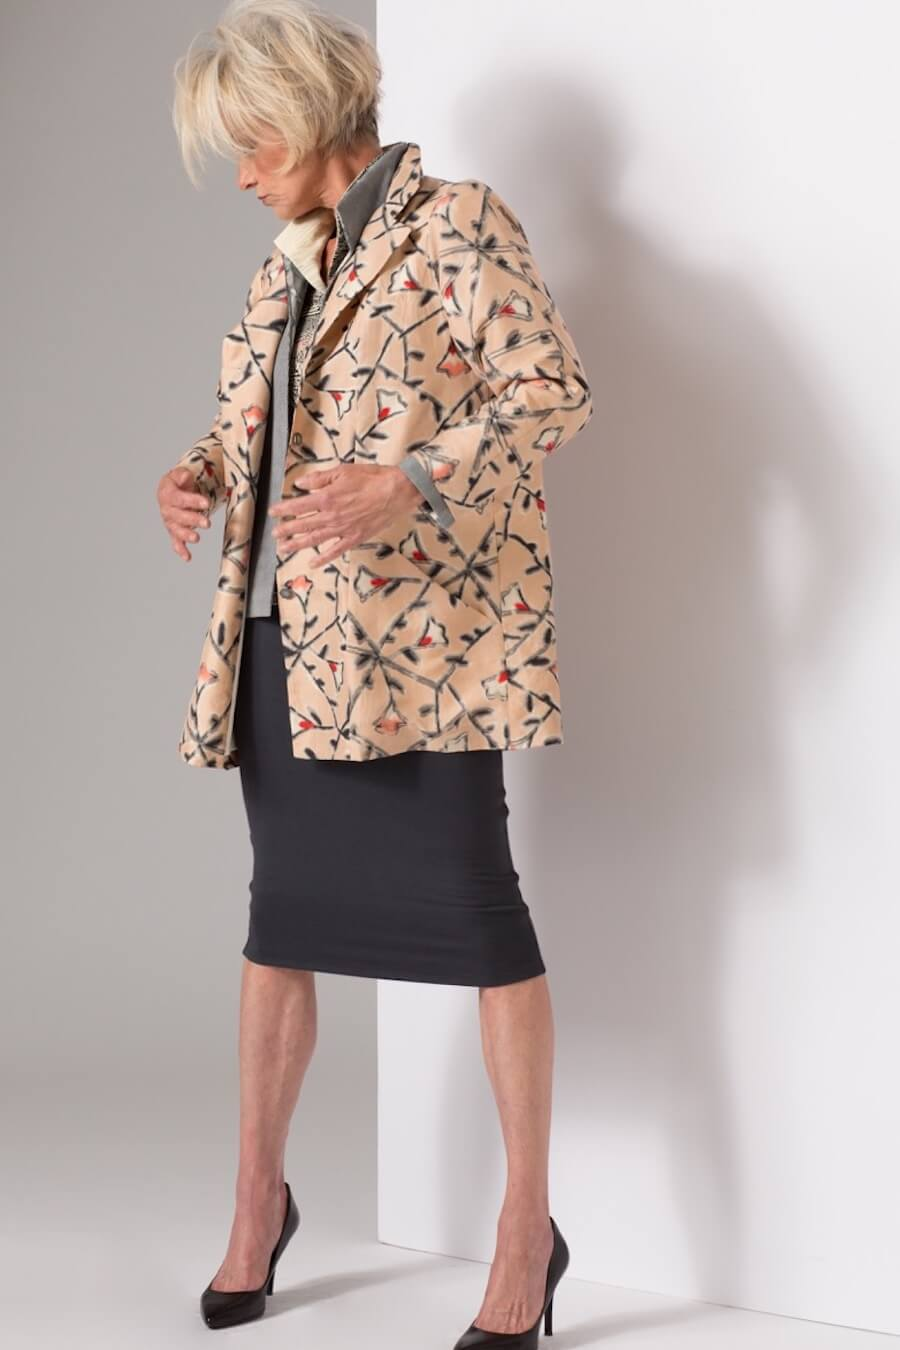 2 Hitoes with Peach Vines Trench — Vintage Kimono Silk | Ann Williamson